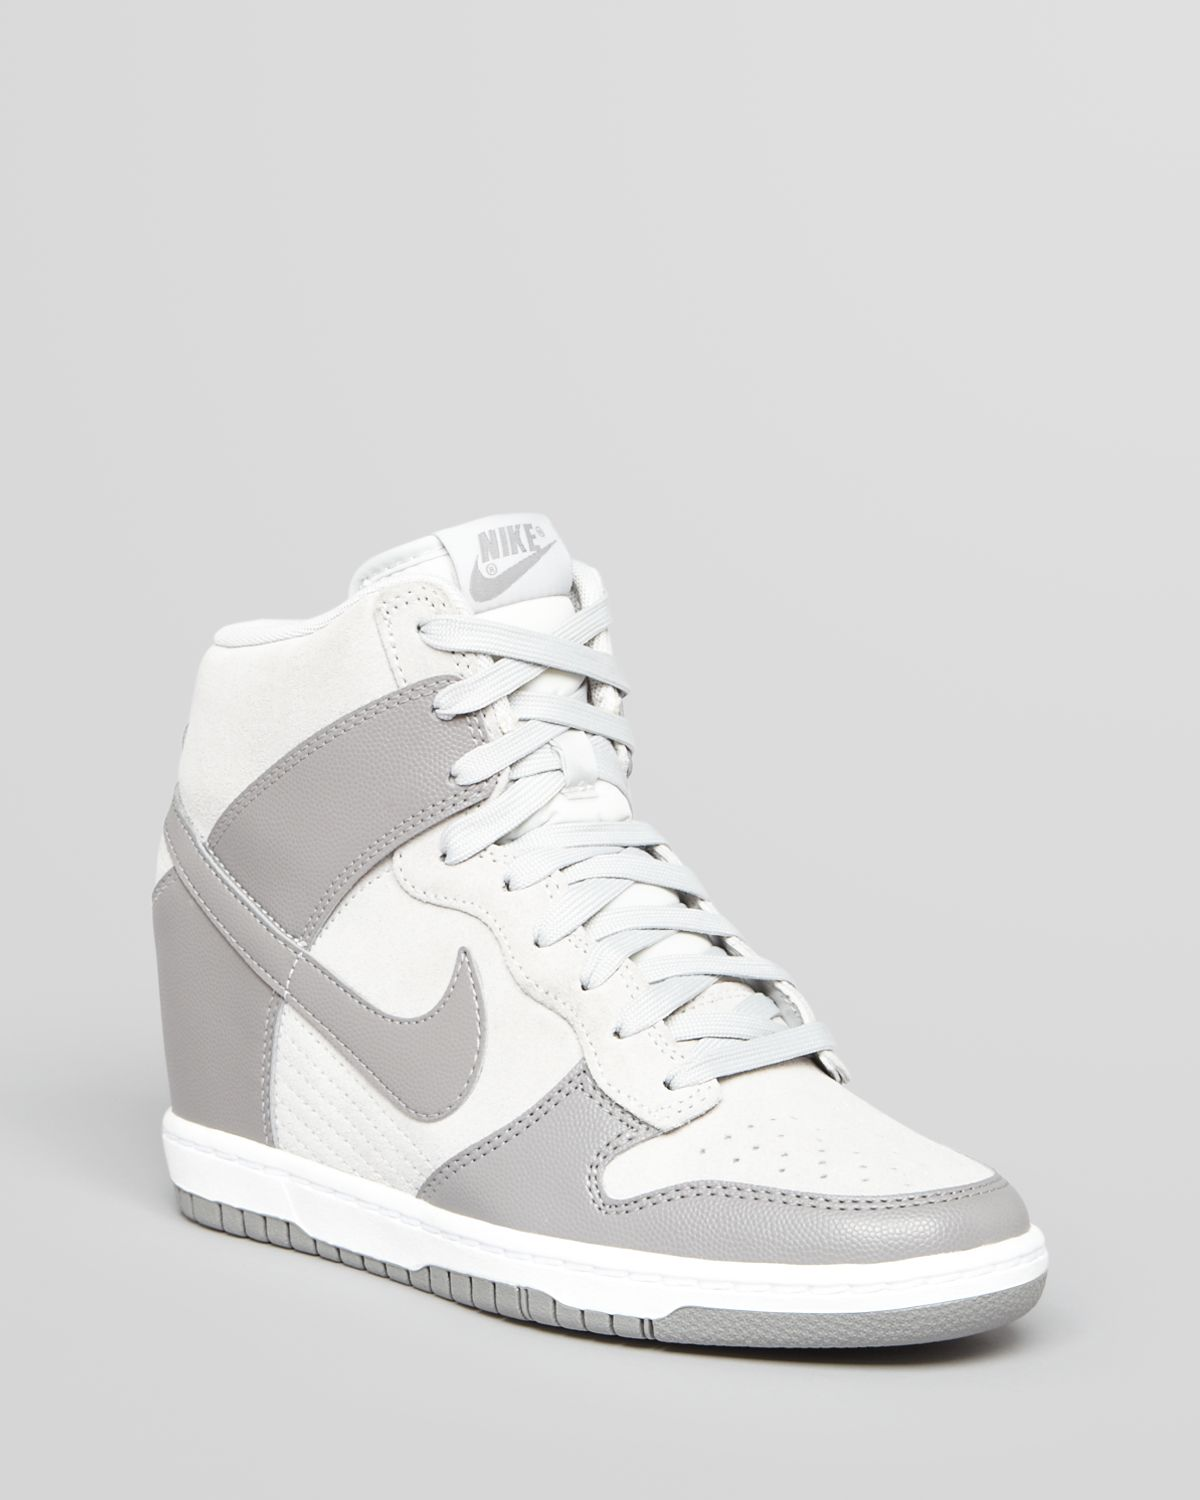 Nike High Top Lace Up Sneakers Womens Dunk Sky Hi in Gray ...